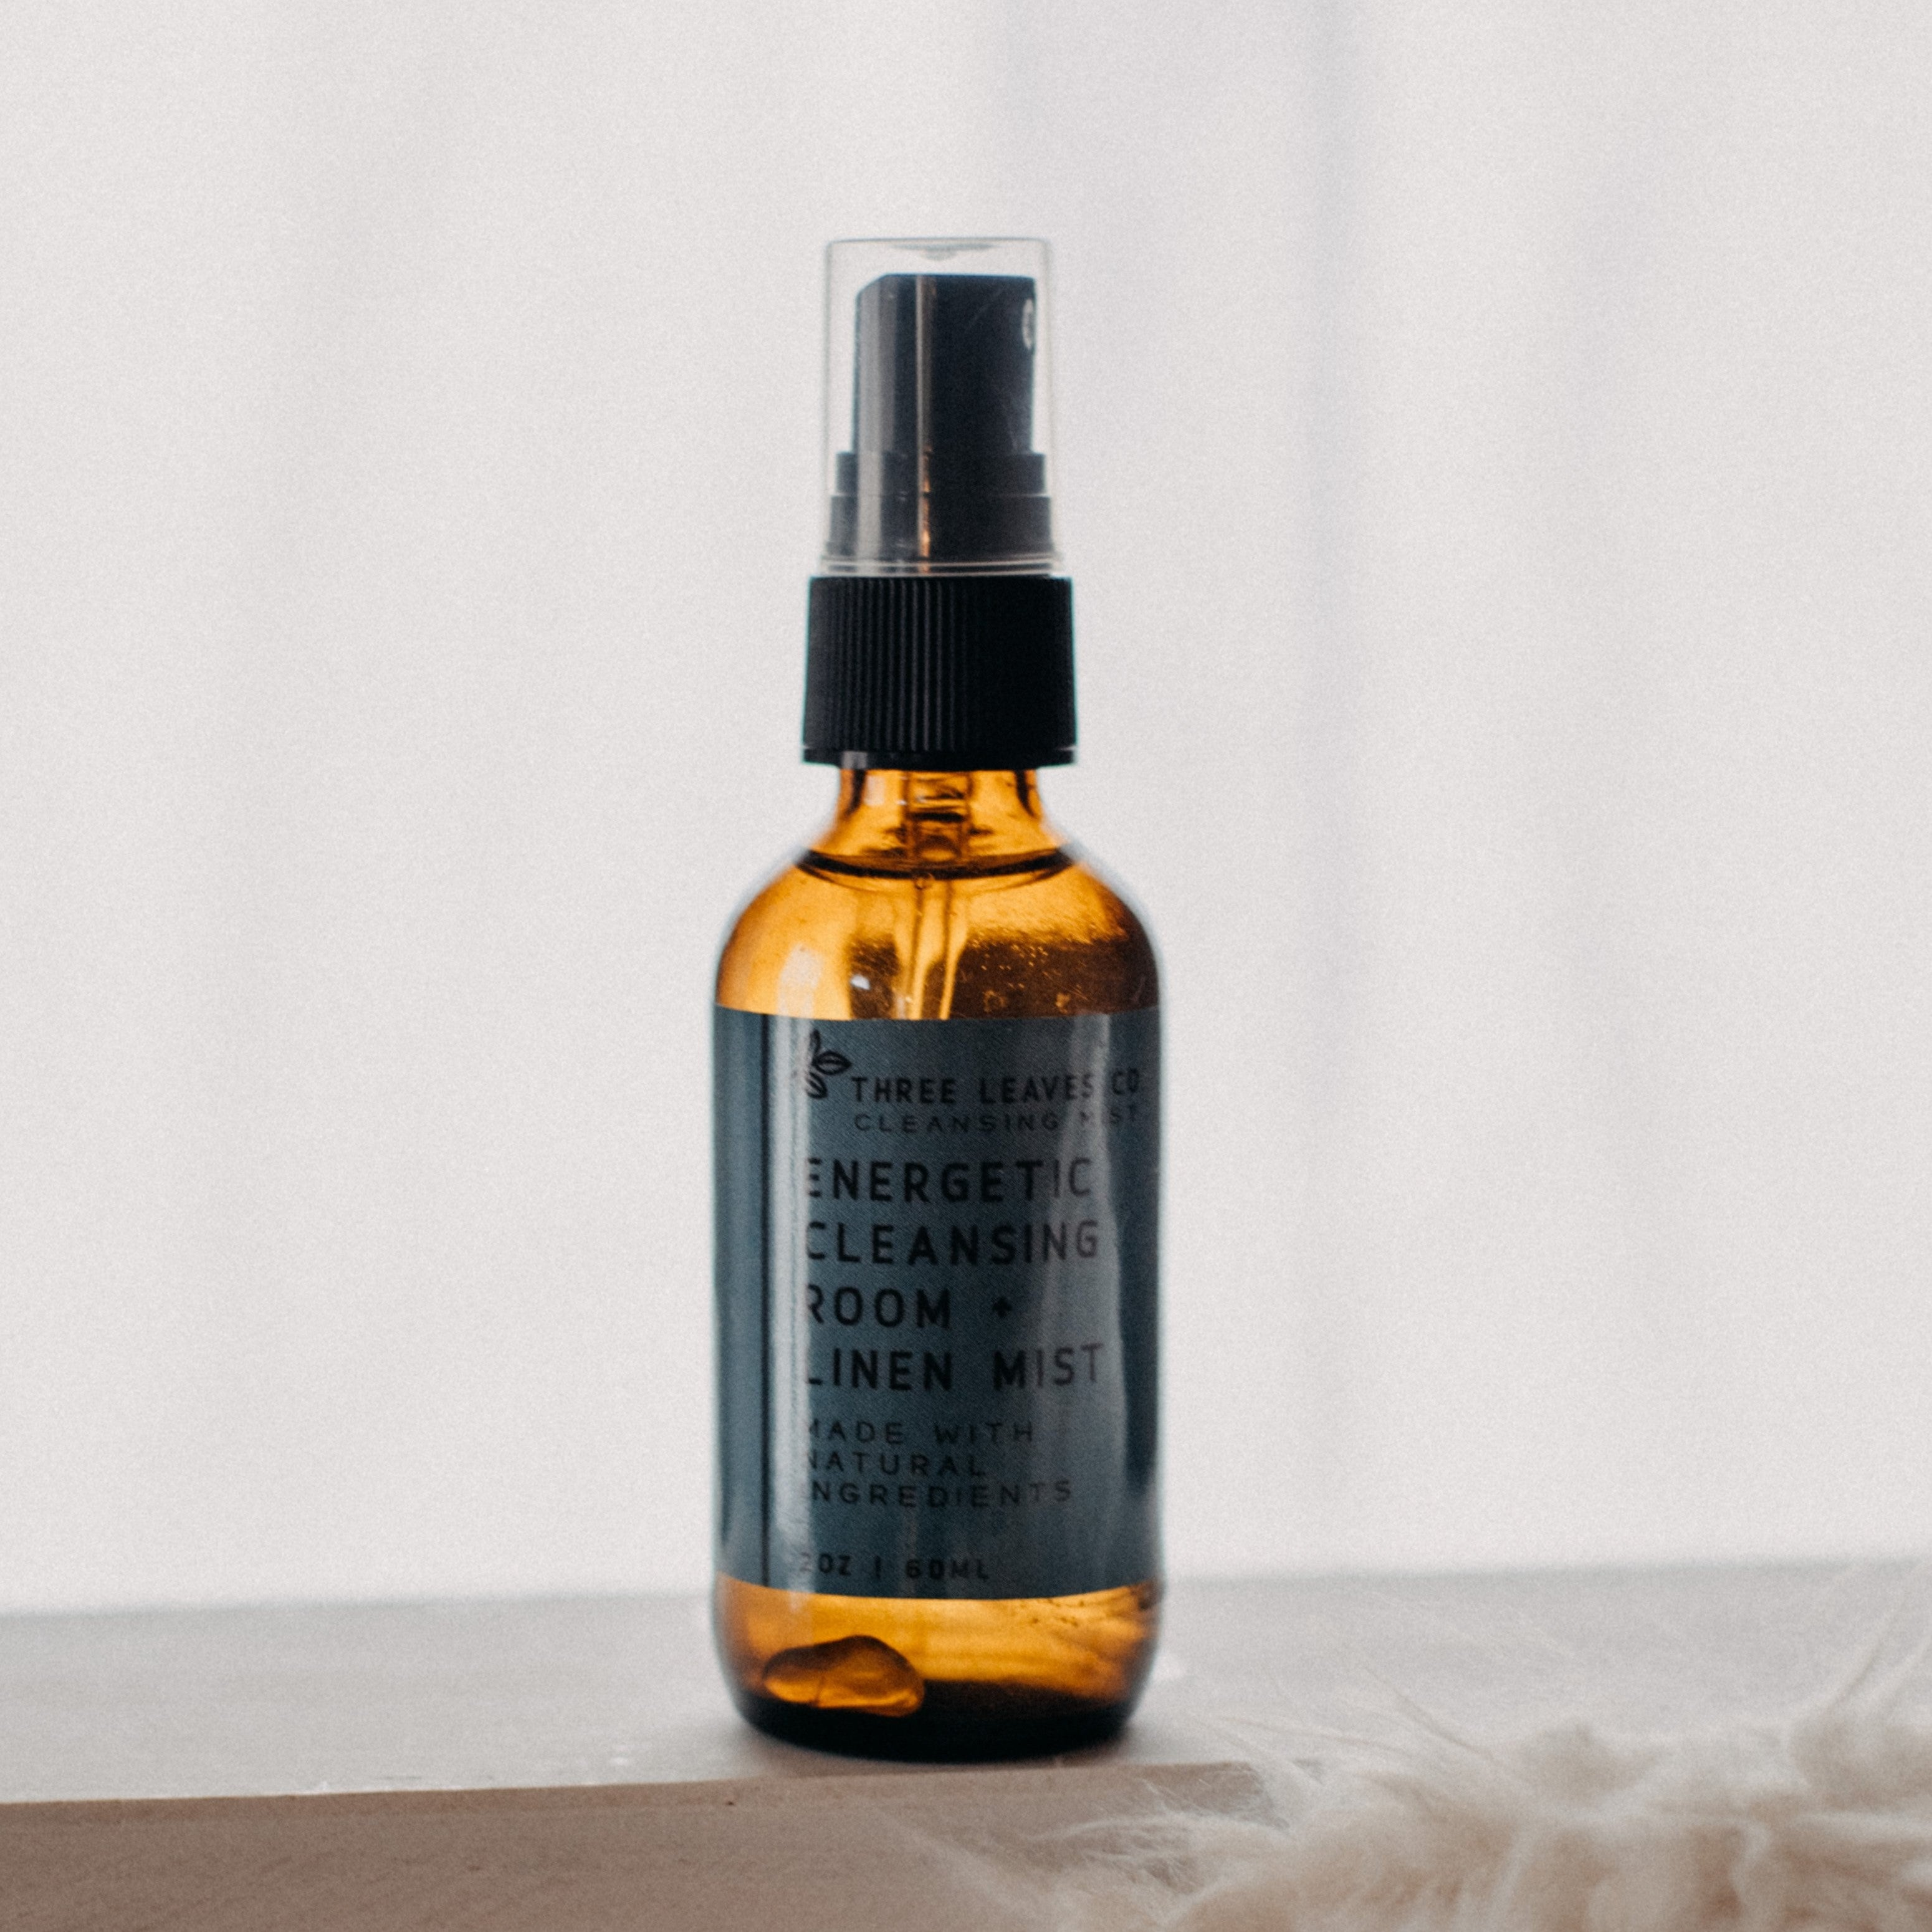 Energetic Cleansing Linen and Room Mist